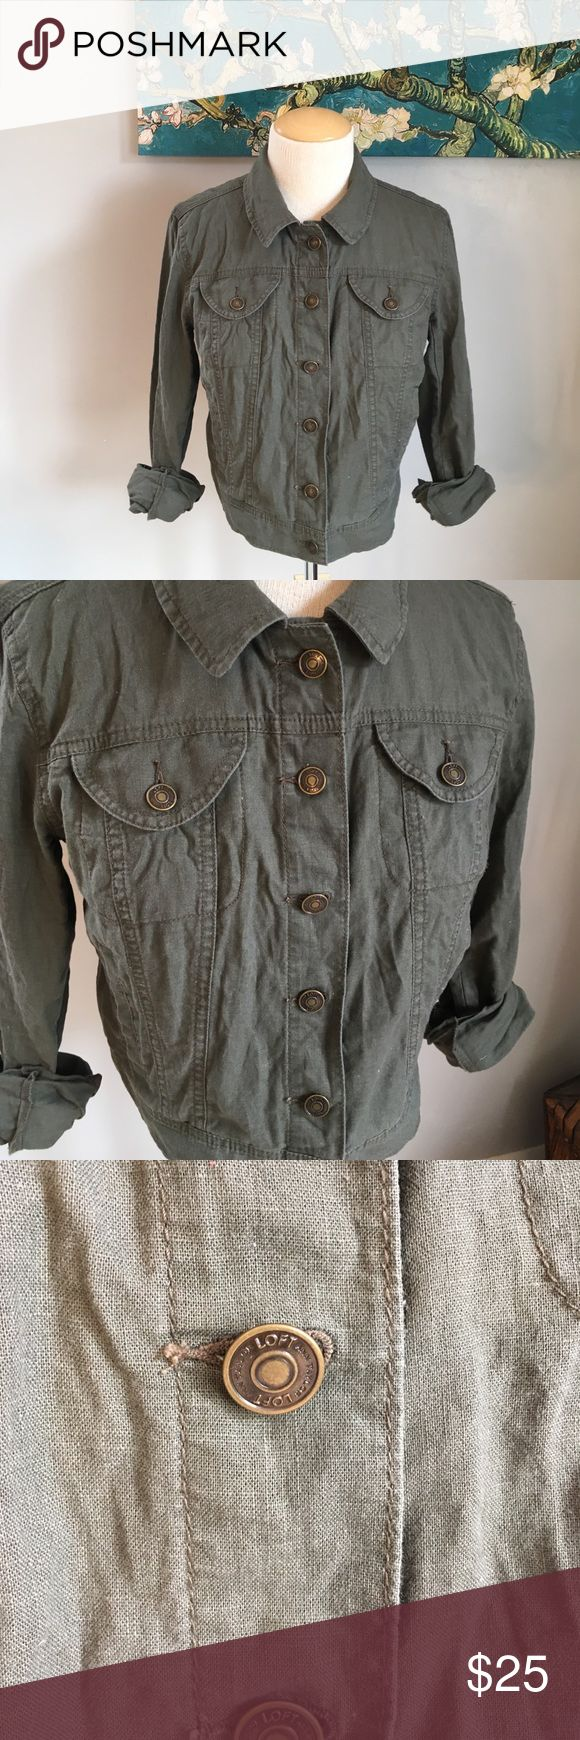 Ann Taylor Loft Cotton Button Up Army Green Jacket Ann Taylor Loft Cotton Button Up Army Green Jacket with long sleeves. Worn and washed. Smoke free home. EUC. Front pockets. LOFT Jackets & Coats